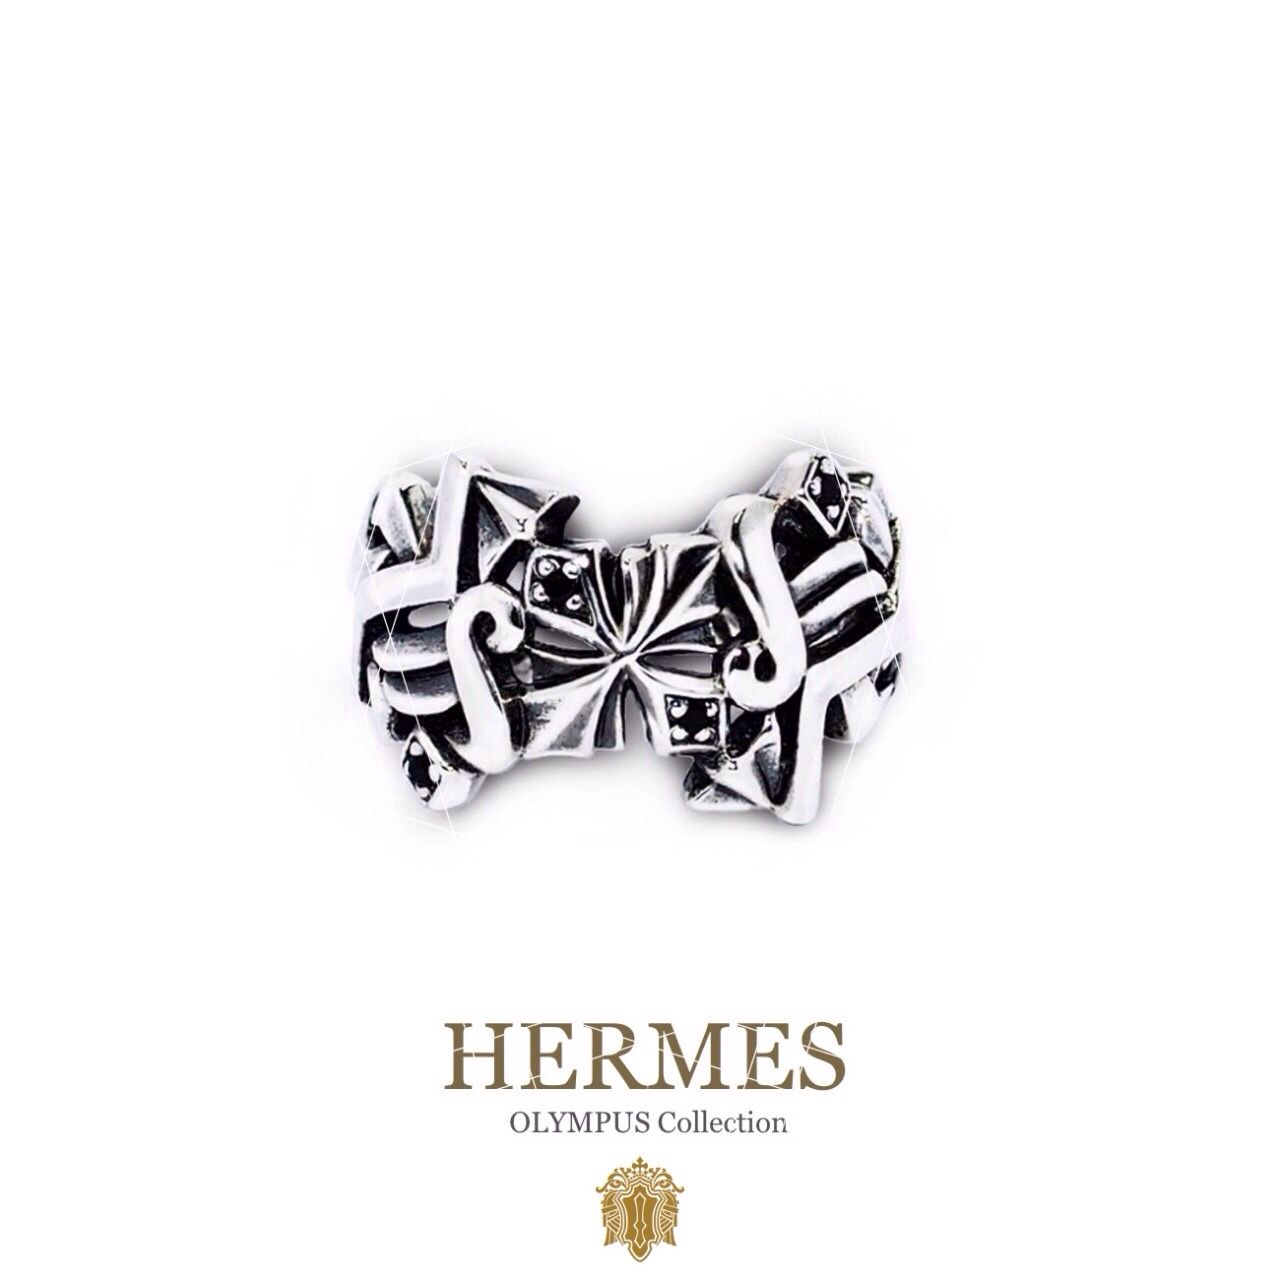 "PAHKIN:HERMES Ring 925 Worldwide shipping. www.pahkincollection.com ""Greek Mythology Rock"" Worldwide Shipping 19 Country #PAHKIN #Mythology #OLYMPUS #models #fashion #accessories #jewelry #man #lady #gay #guy #casual #style #unique #metrosexual #motorcycle #bike #biker #tattoo #NYC #LA #London #Tokyo #Moscow #Munich #HongKong #Beijing #Bern #Melbourne #Toronto"